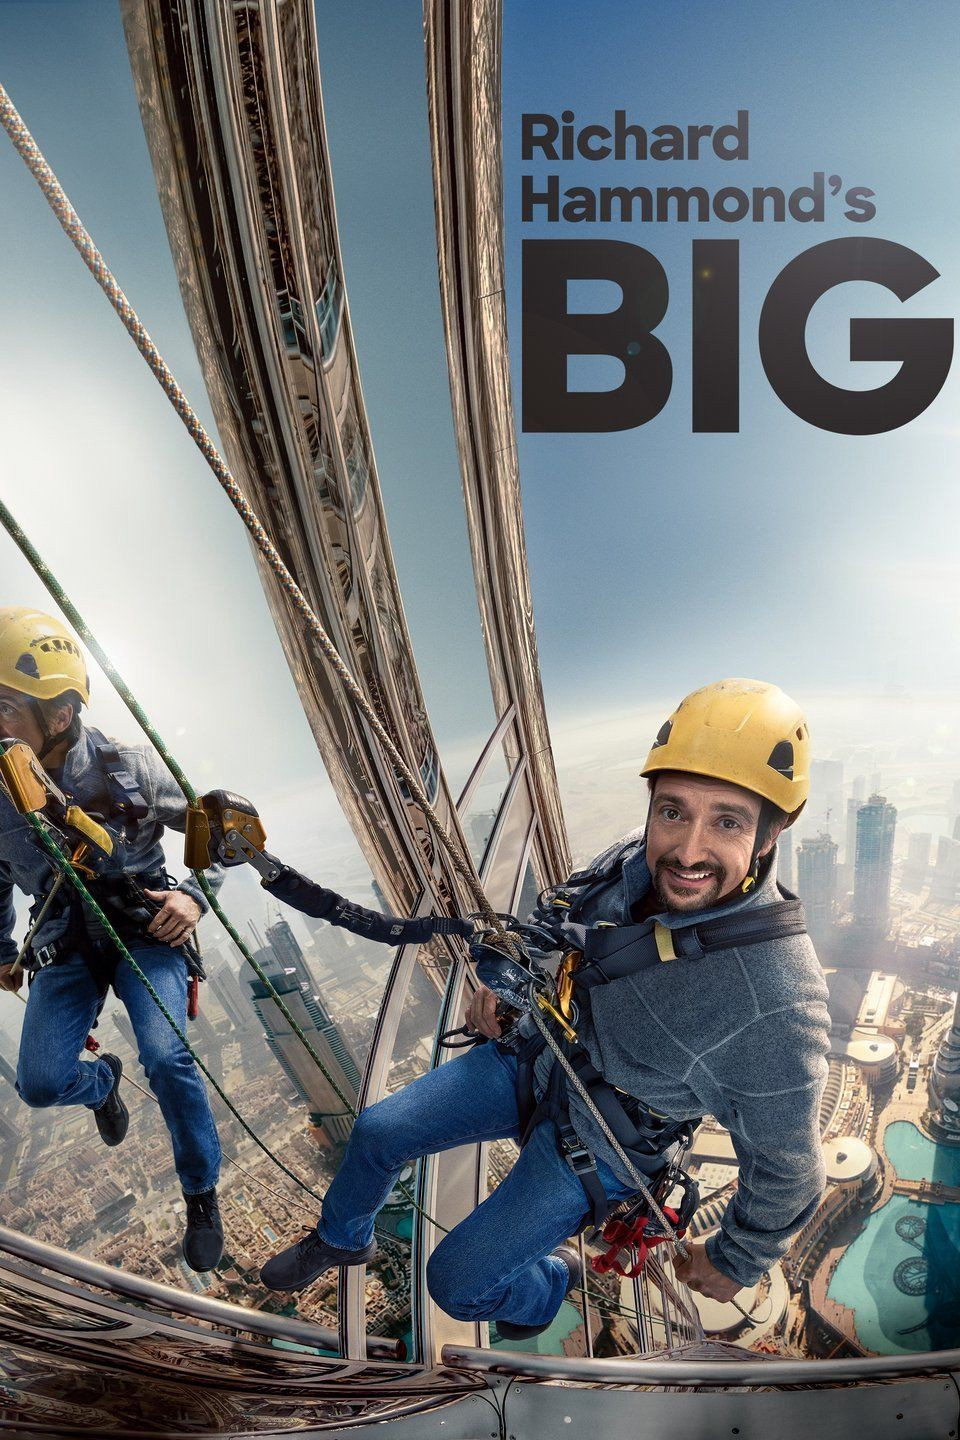 Richard.Hammonds.Big.S01E01.720p.WEB.x264-57CHAN